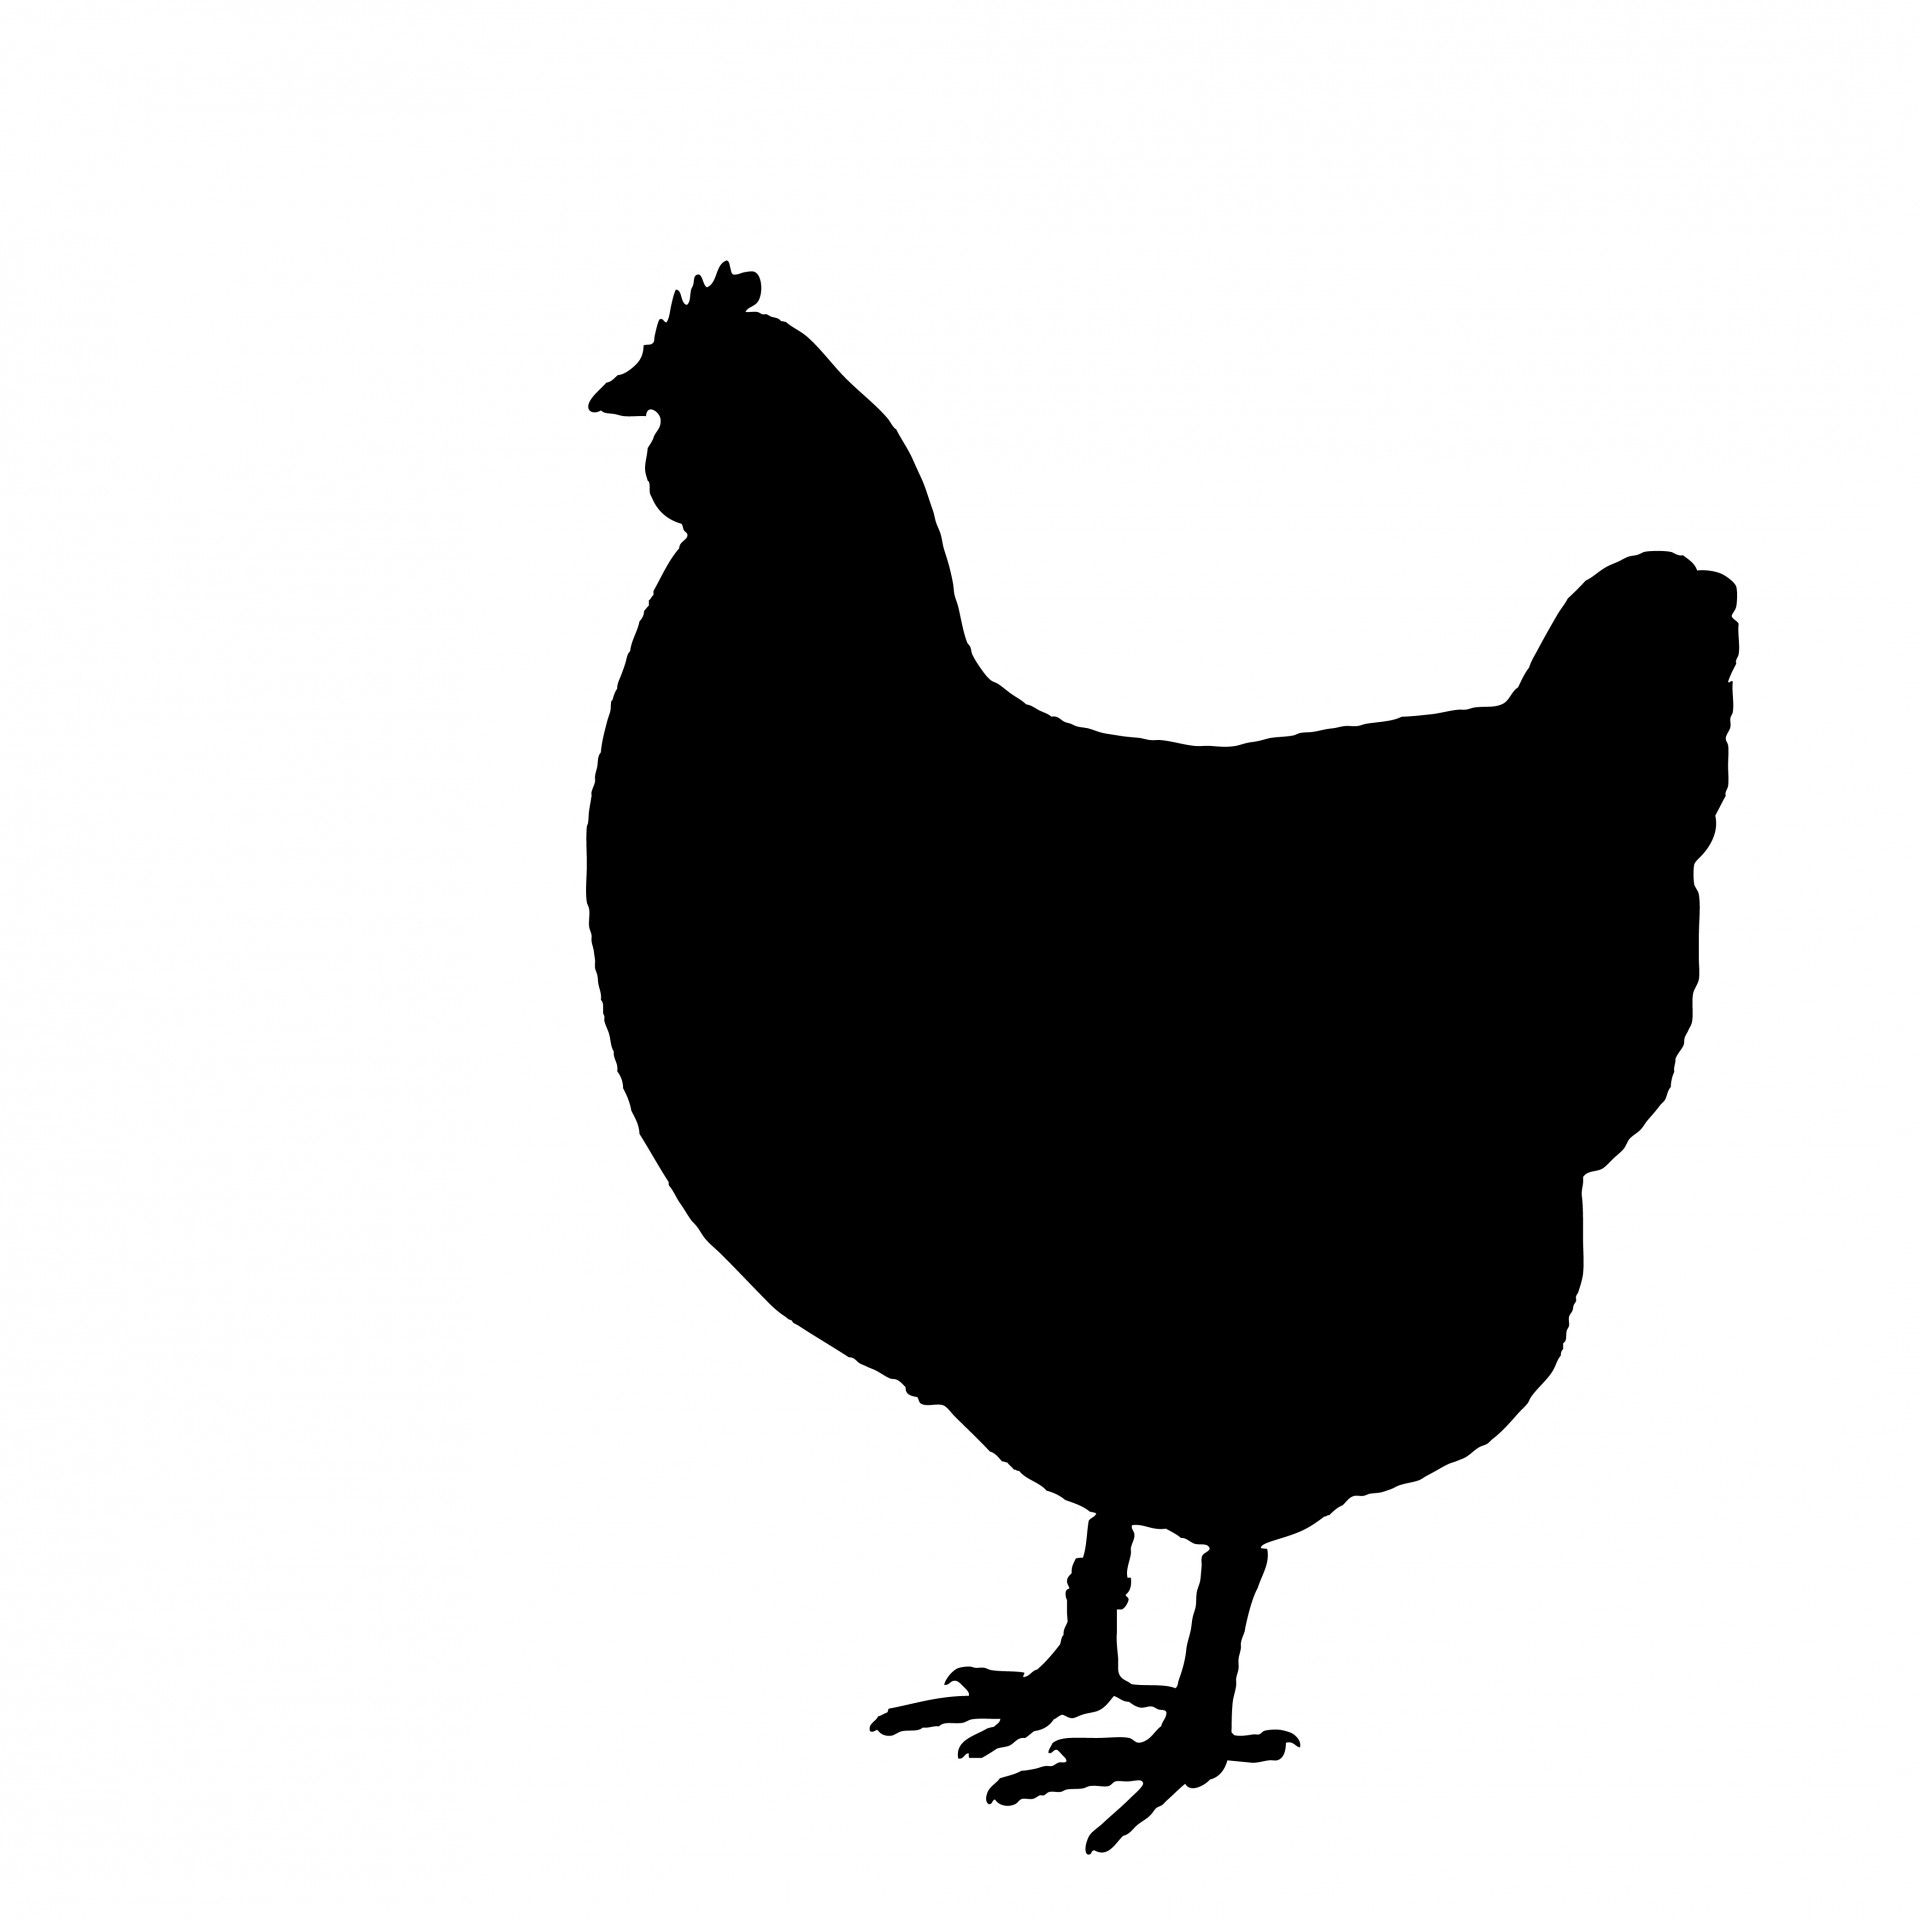 1920x1920 Chicken Silhouette Clipart Free Stock Photo